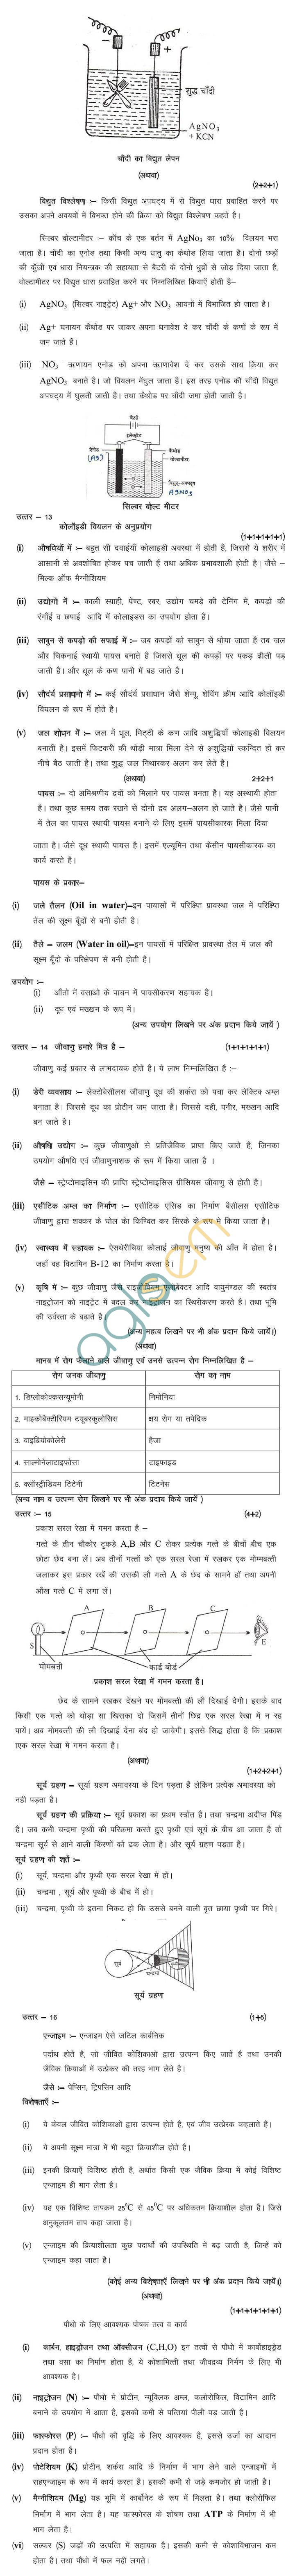 MP Board Class XII Elements of Science and Maths for Agri Model Questions & Answers - Set 3